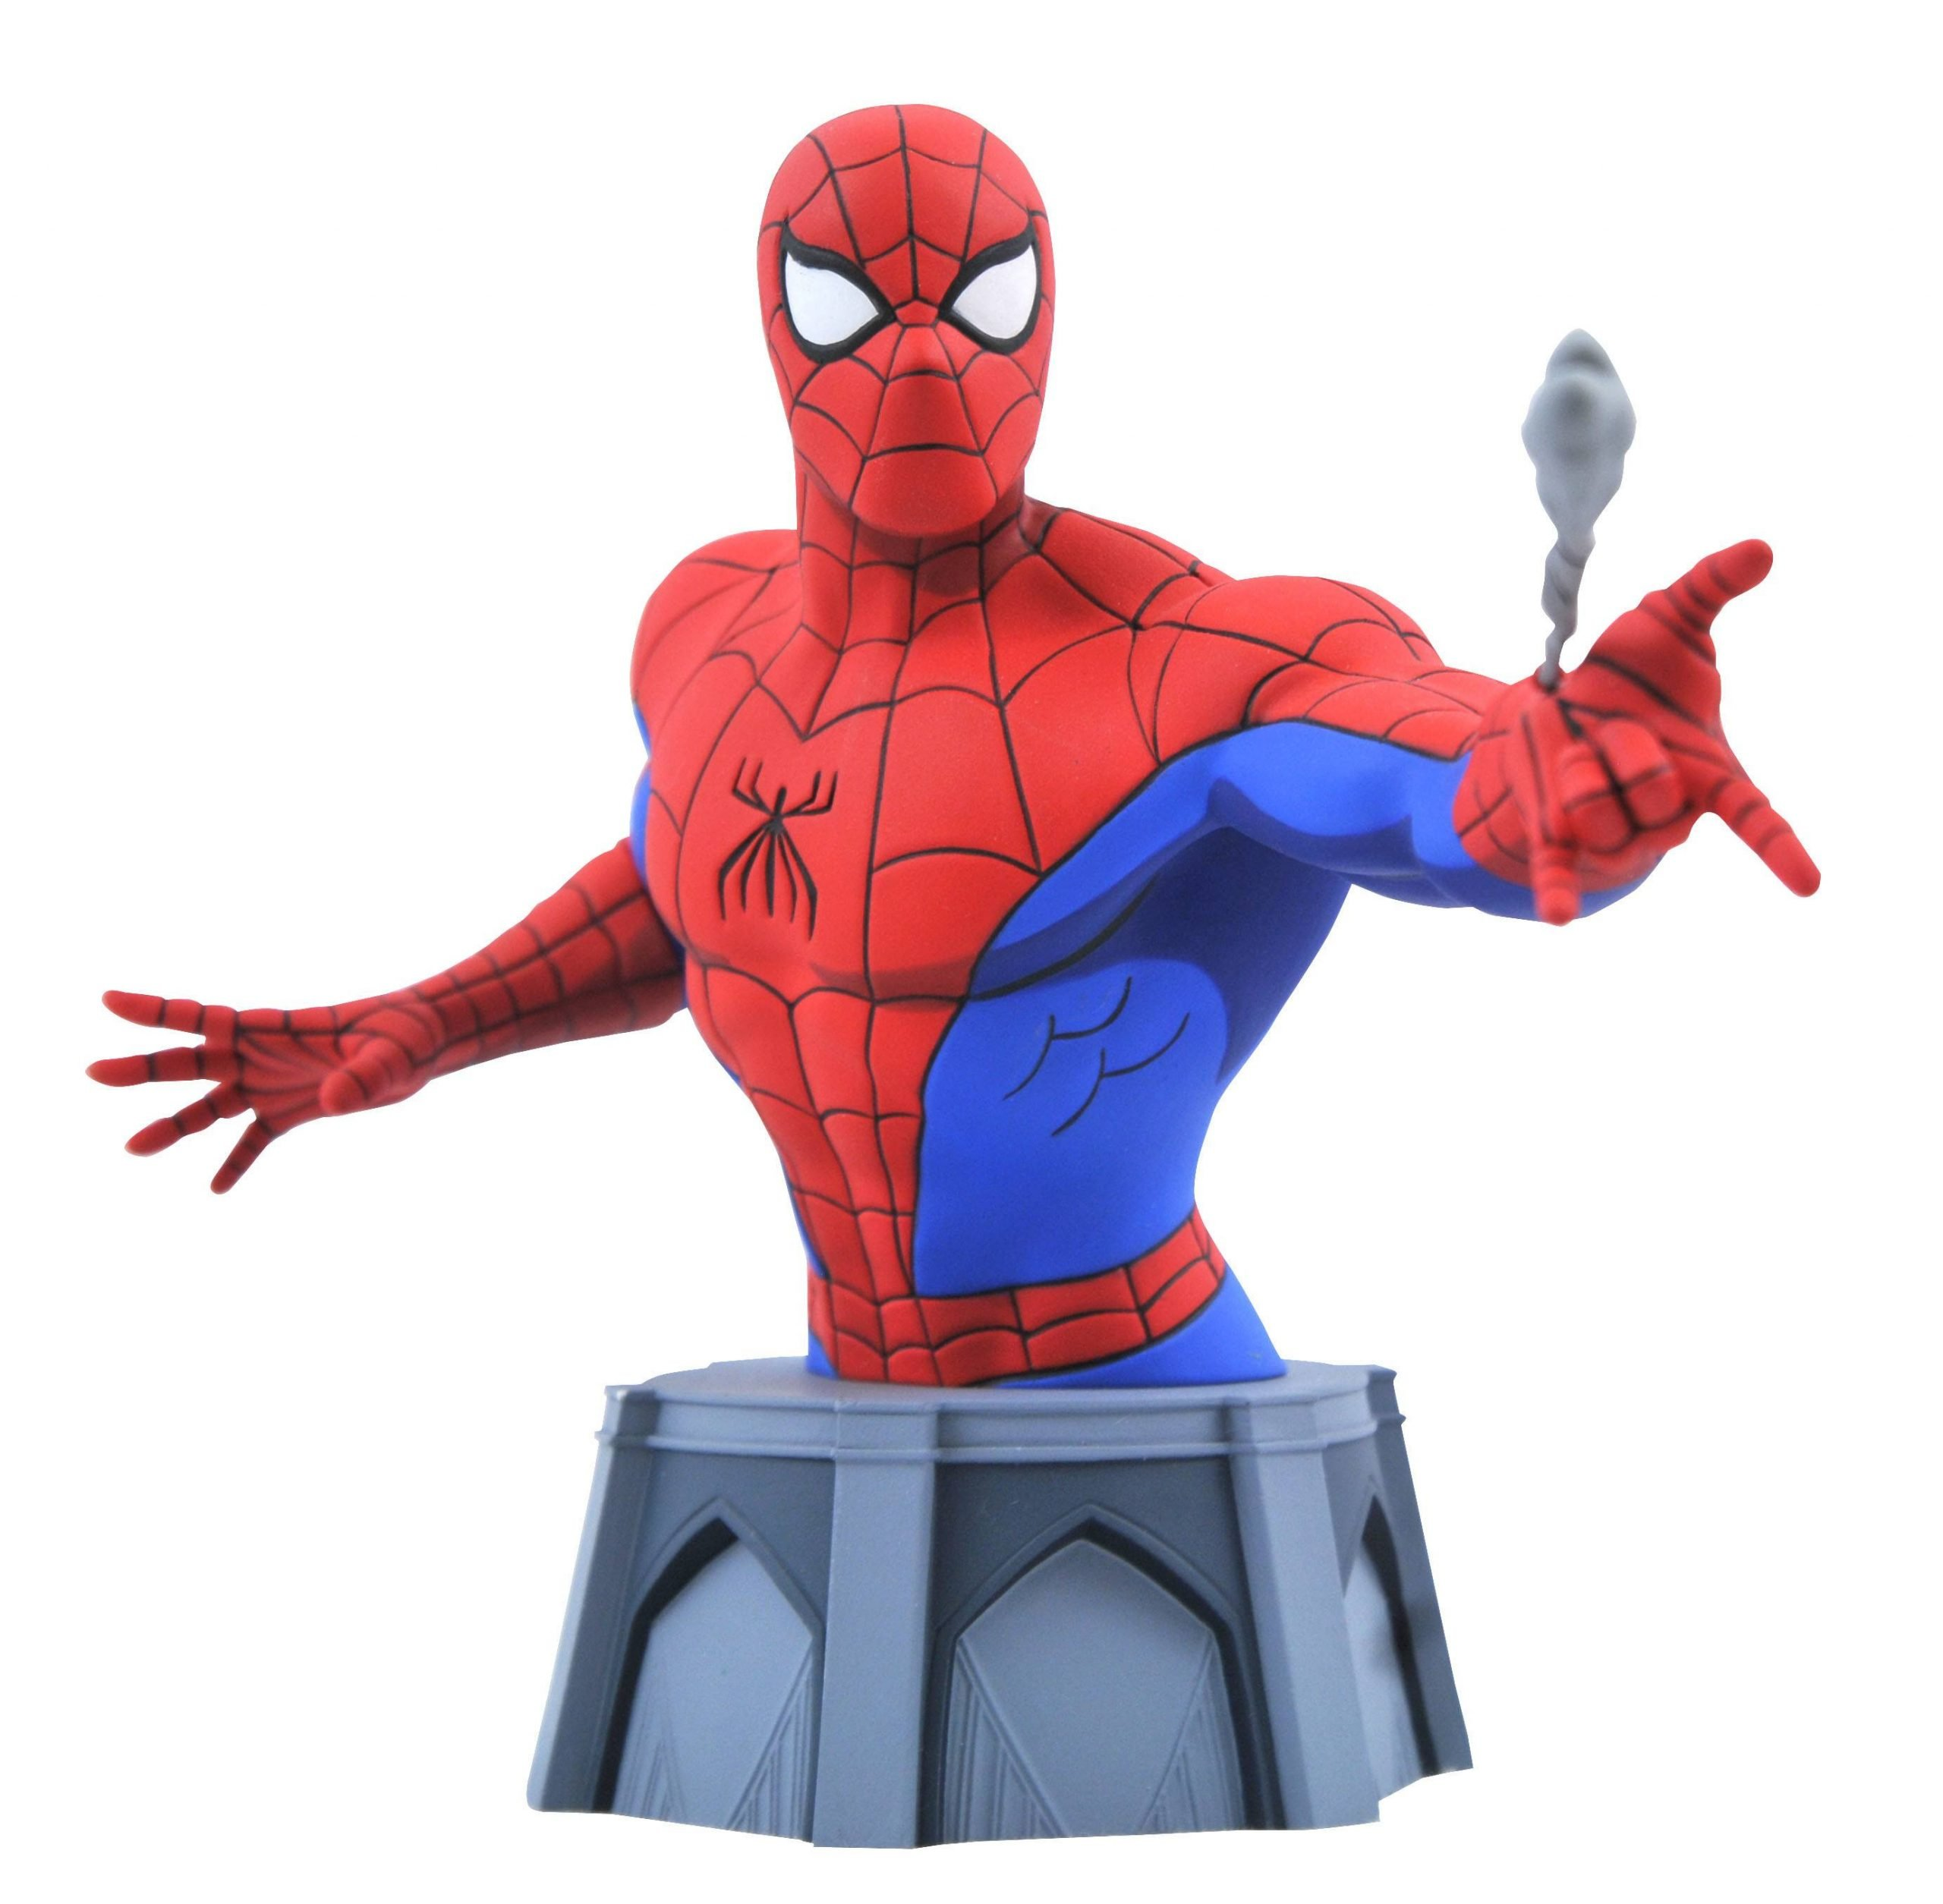 Spider-Man Bust - Animated